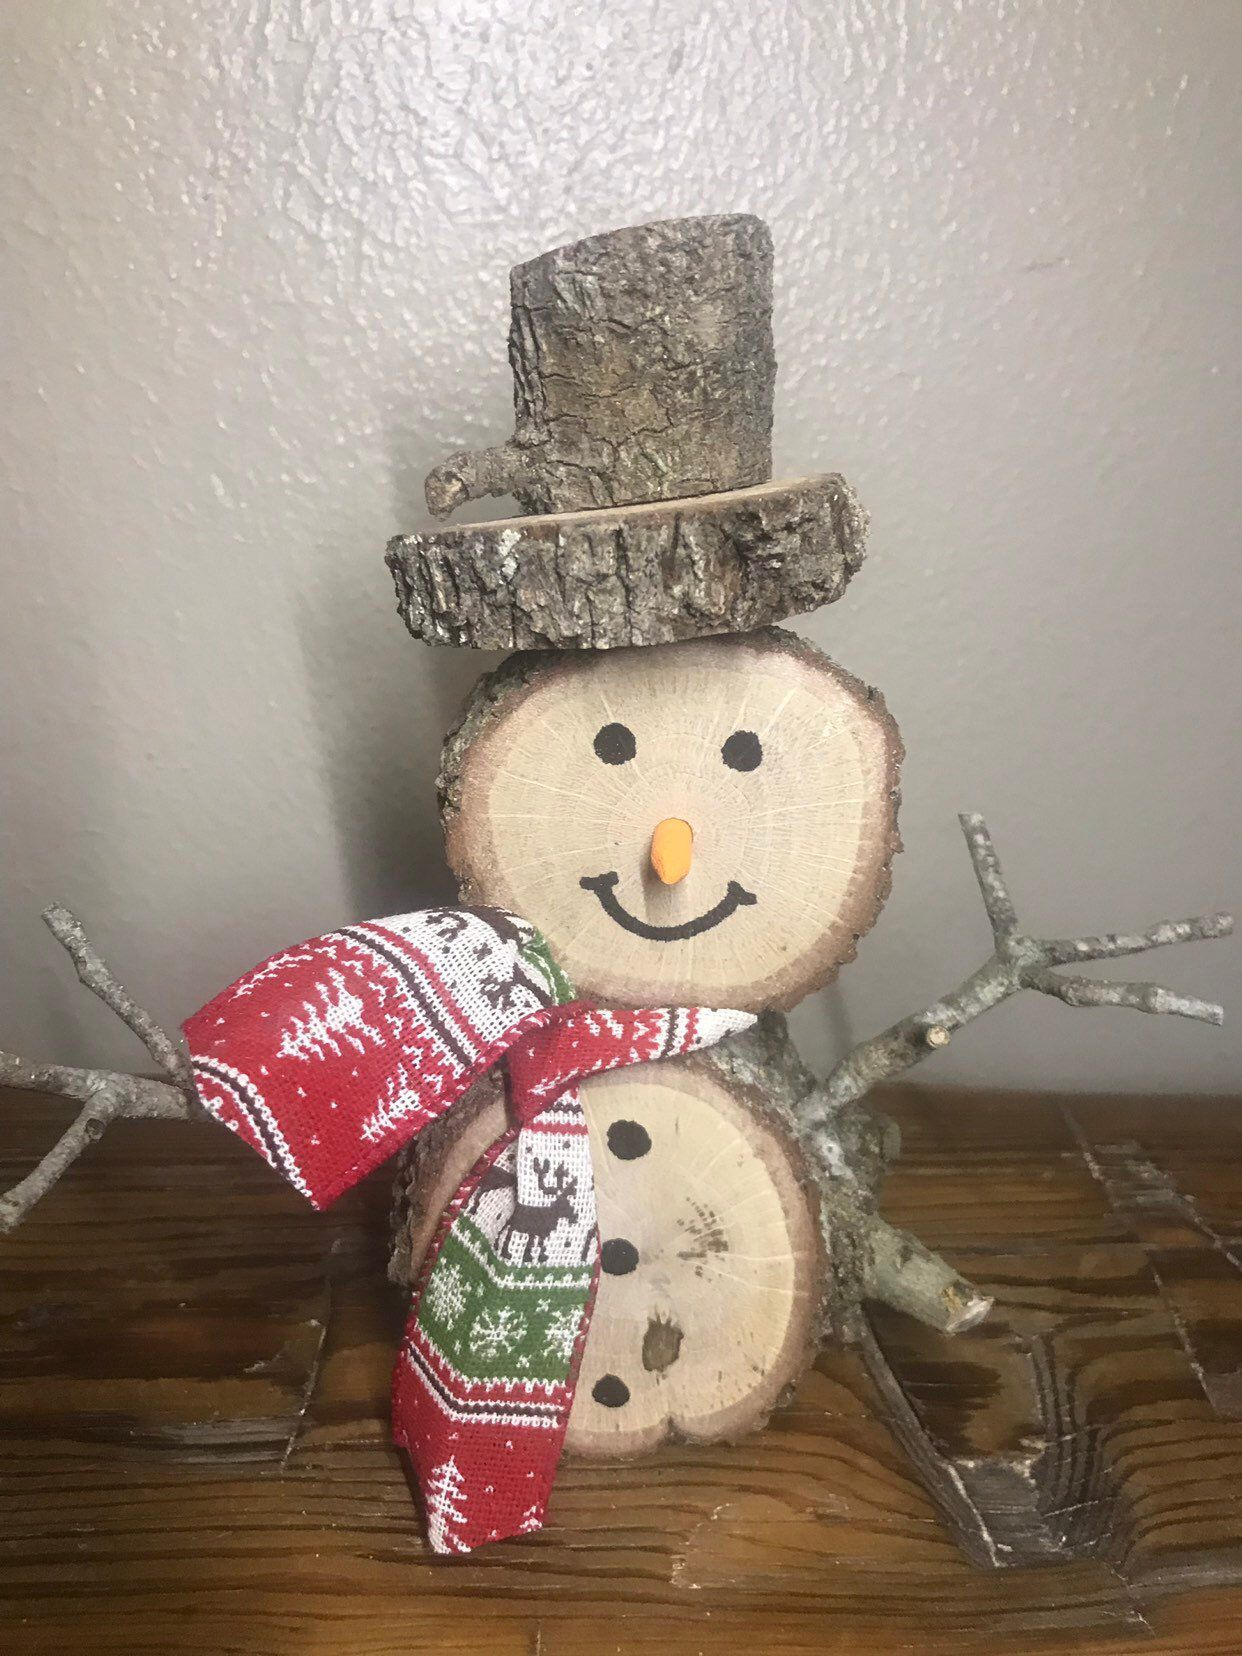 Wooden Snowmen Etsy Wooden Snowman Crafts Christmas Tree Ornaments To Make Wood Christmas Decorations